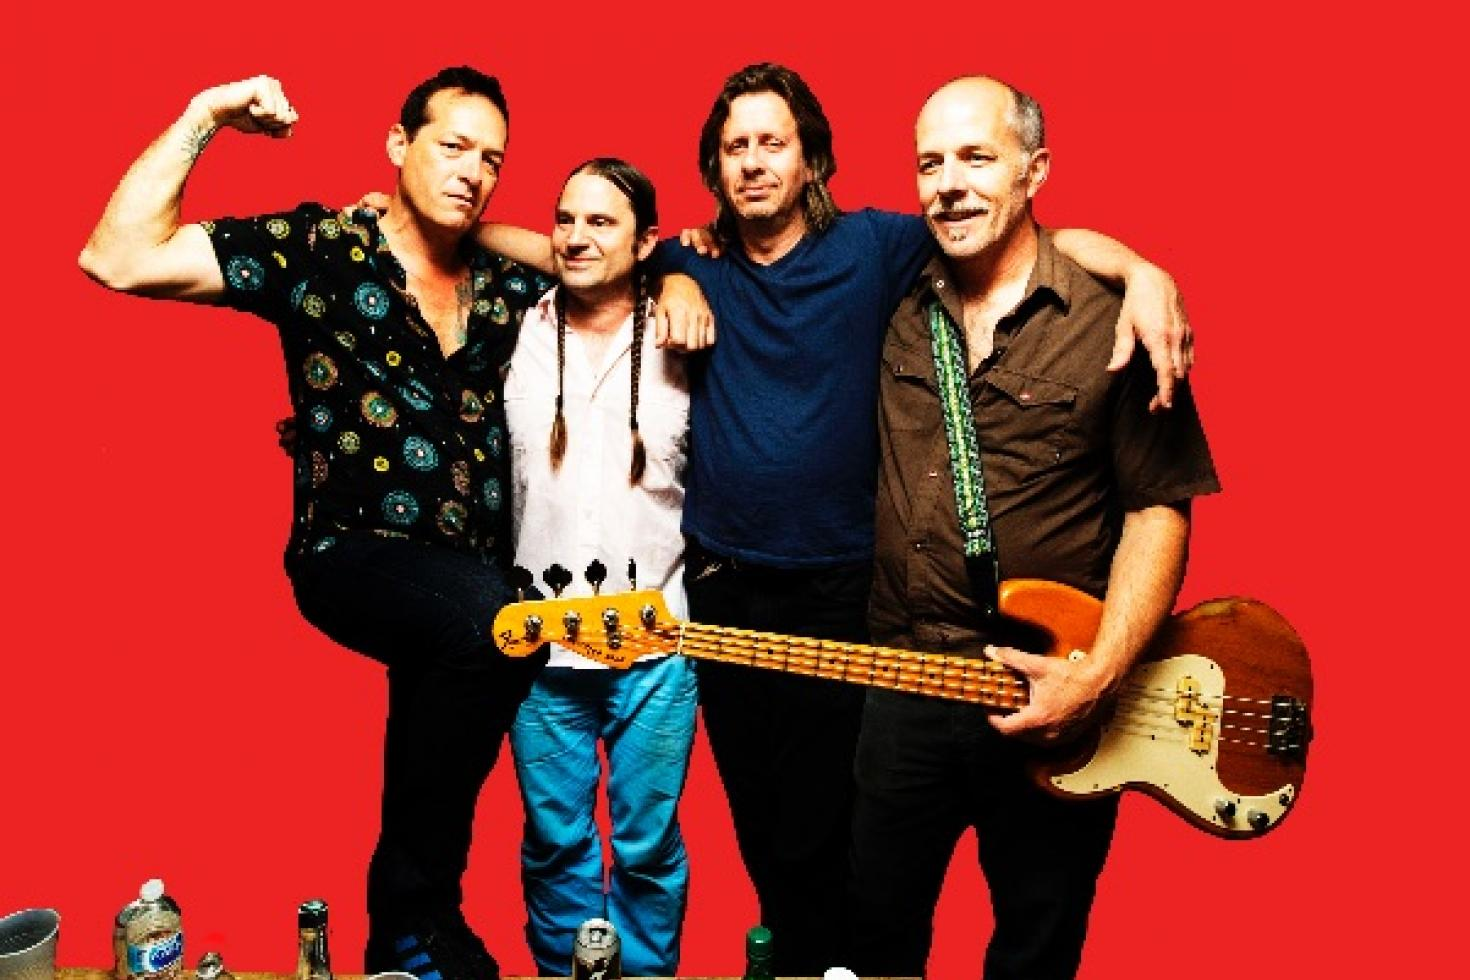 Hot Snakes drop new track 'Checkmate'